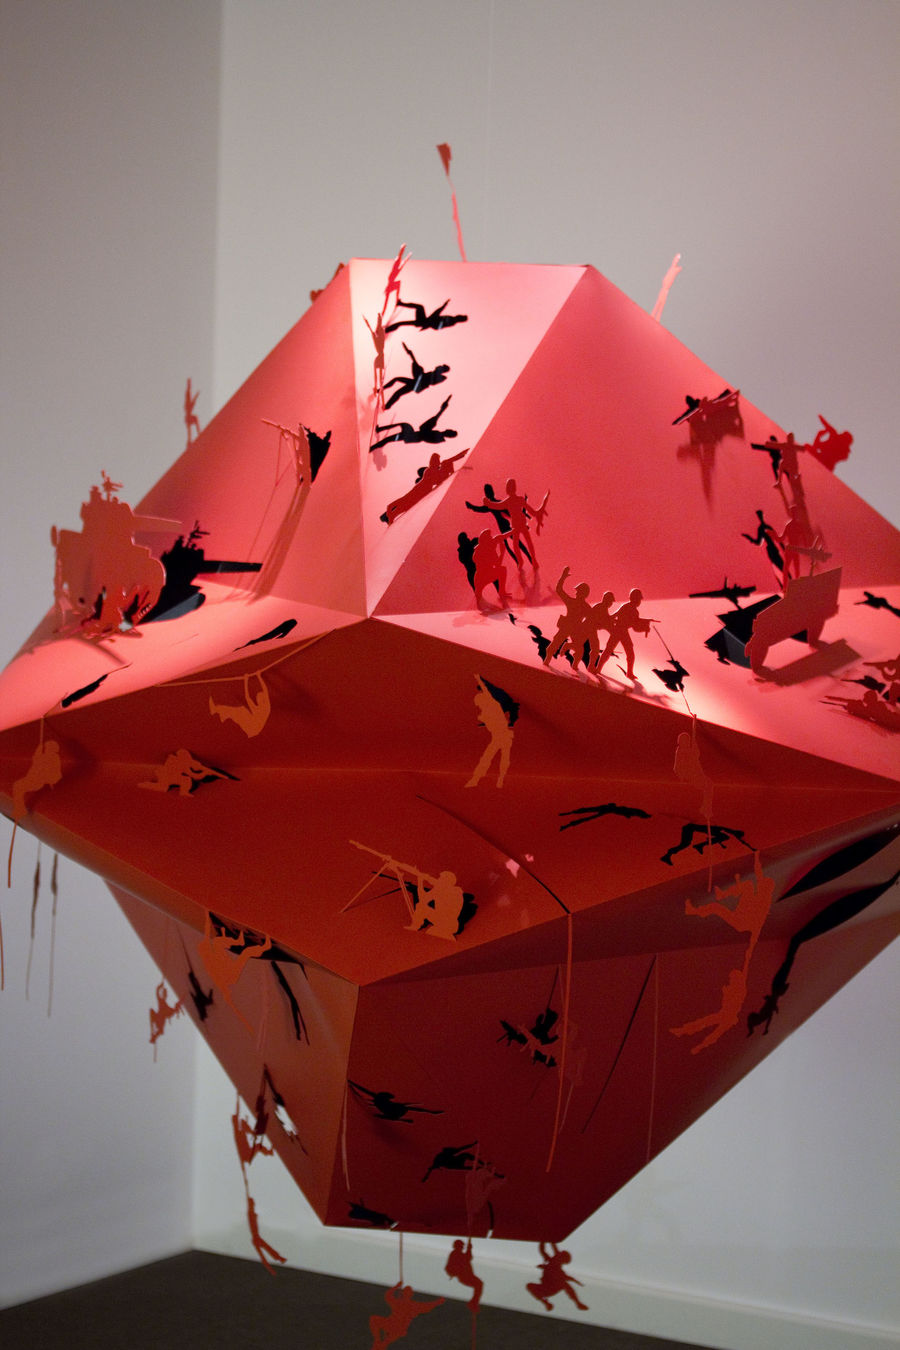 RED BATTLE (Exhibitions) by Lo Siento Studio, Barcelona